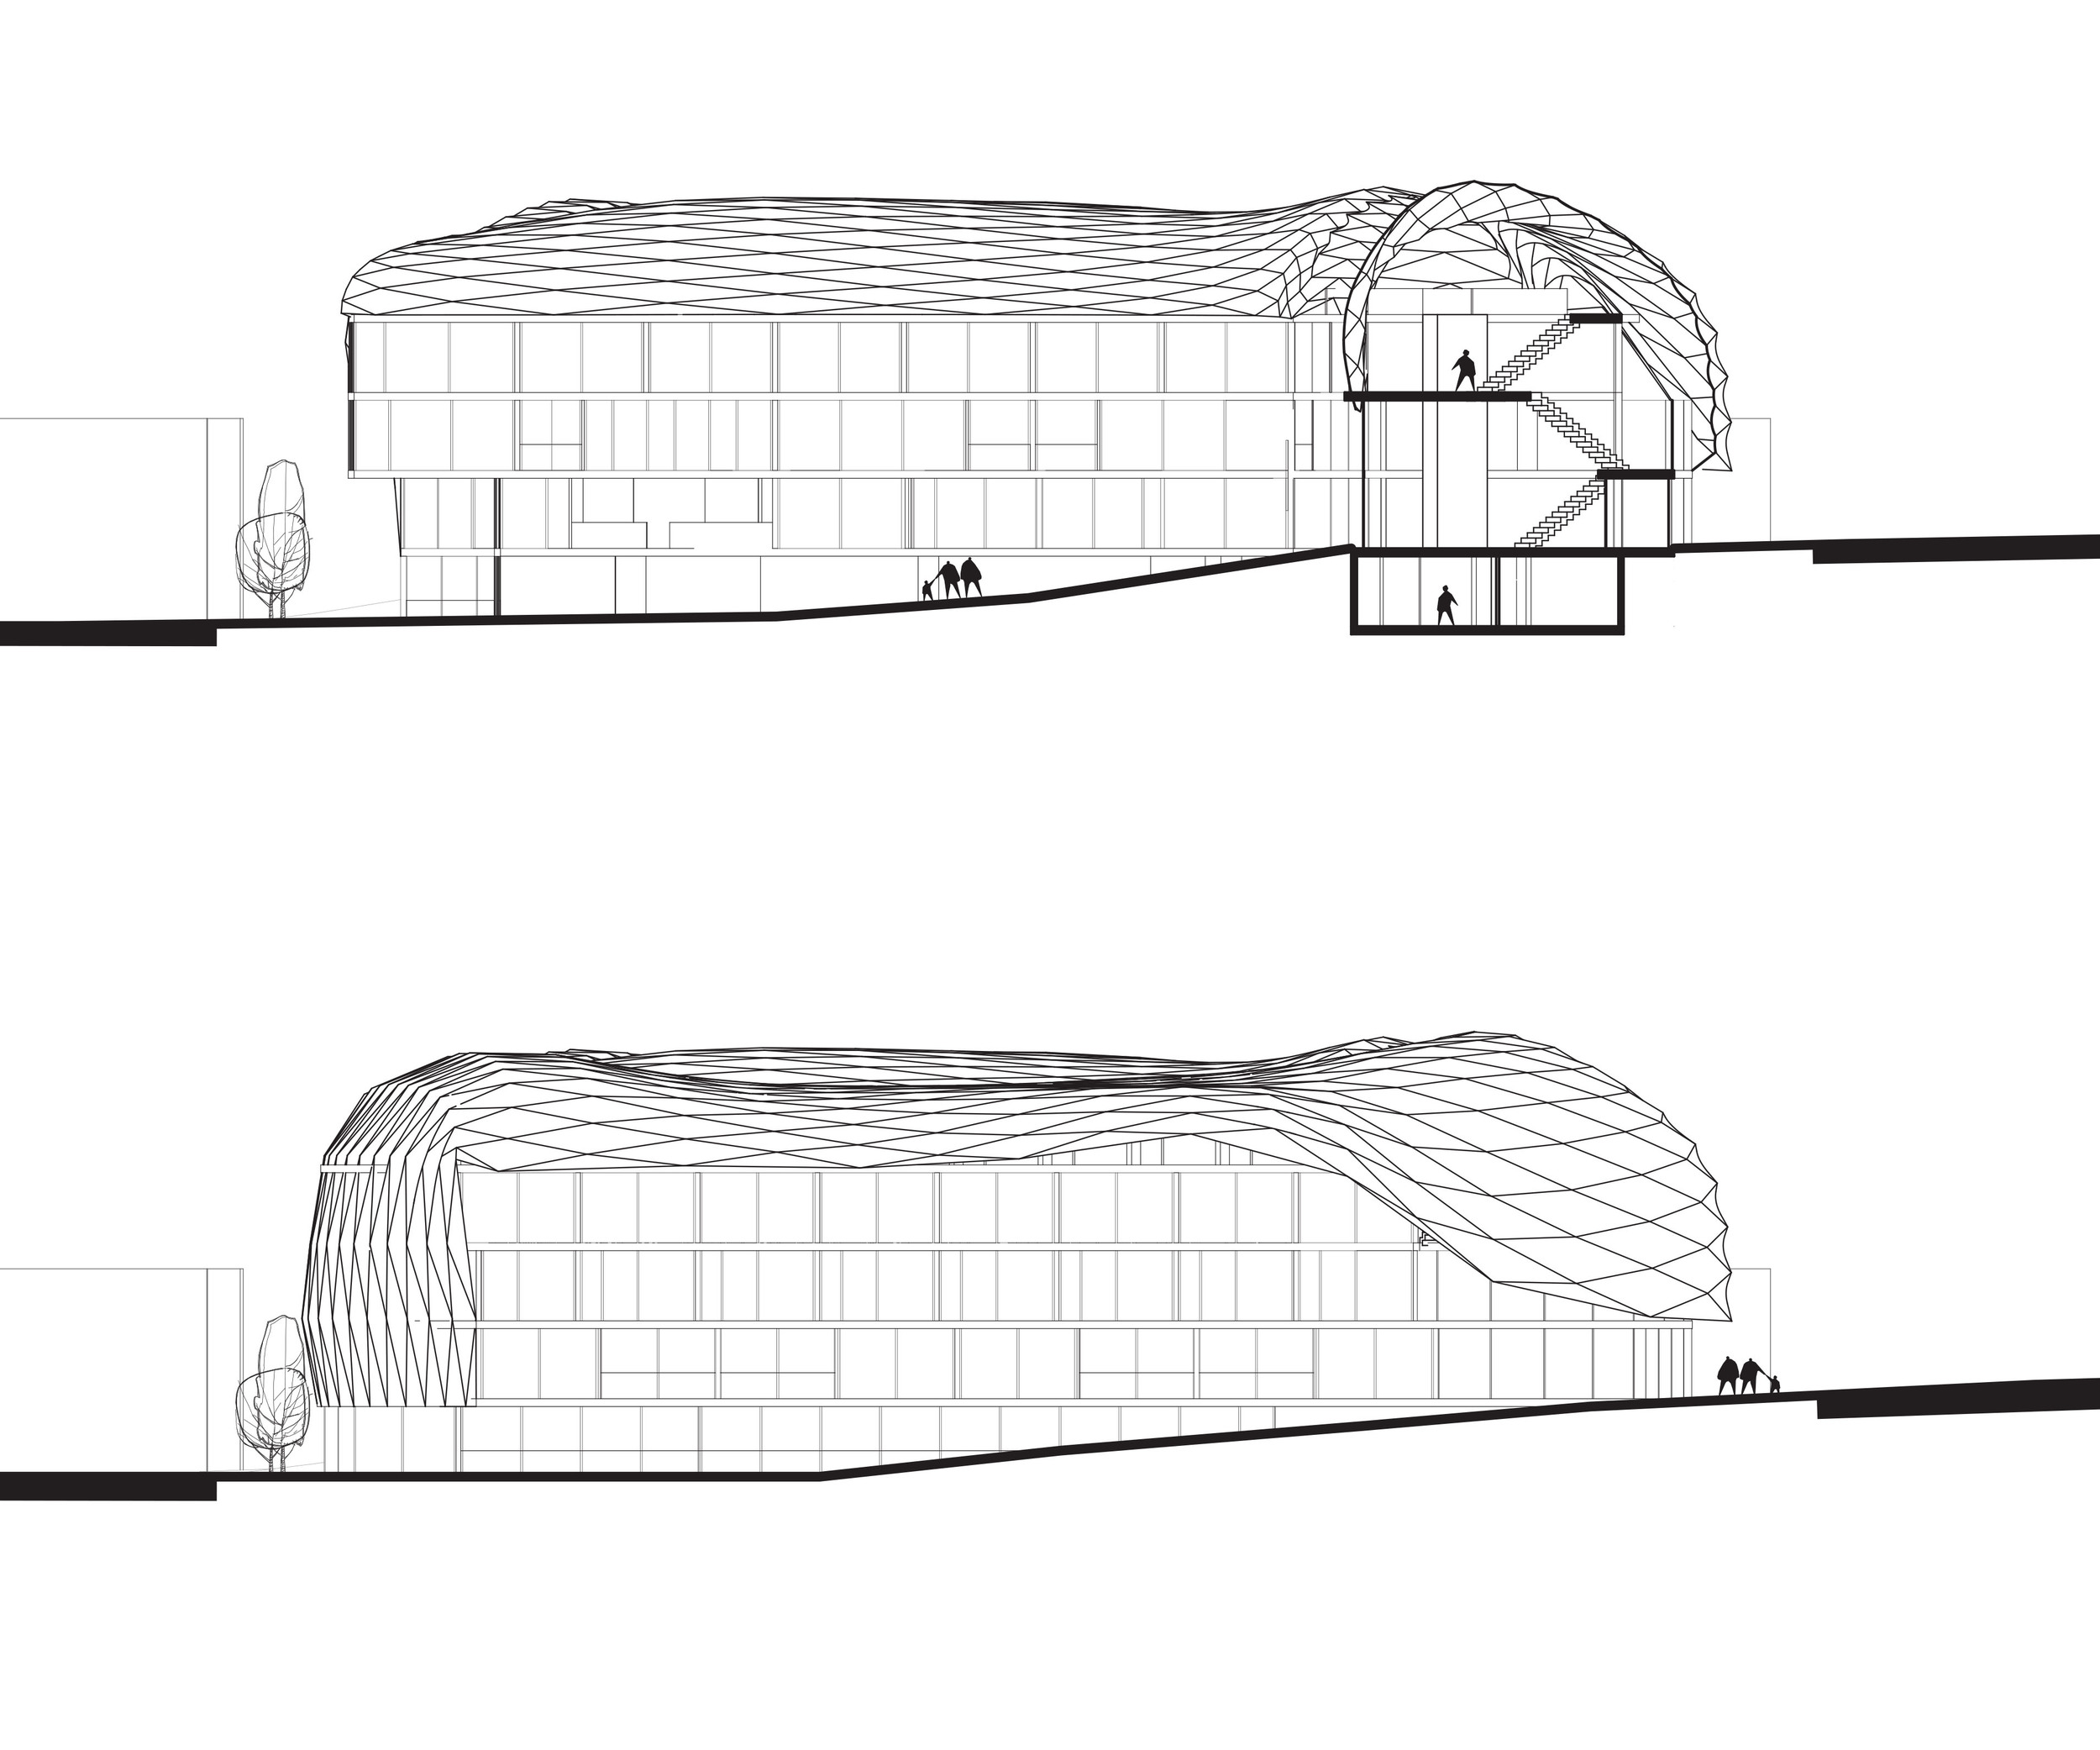 Sections and Elevations Detail